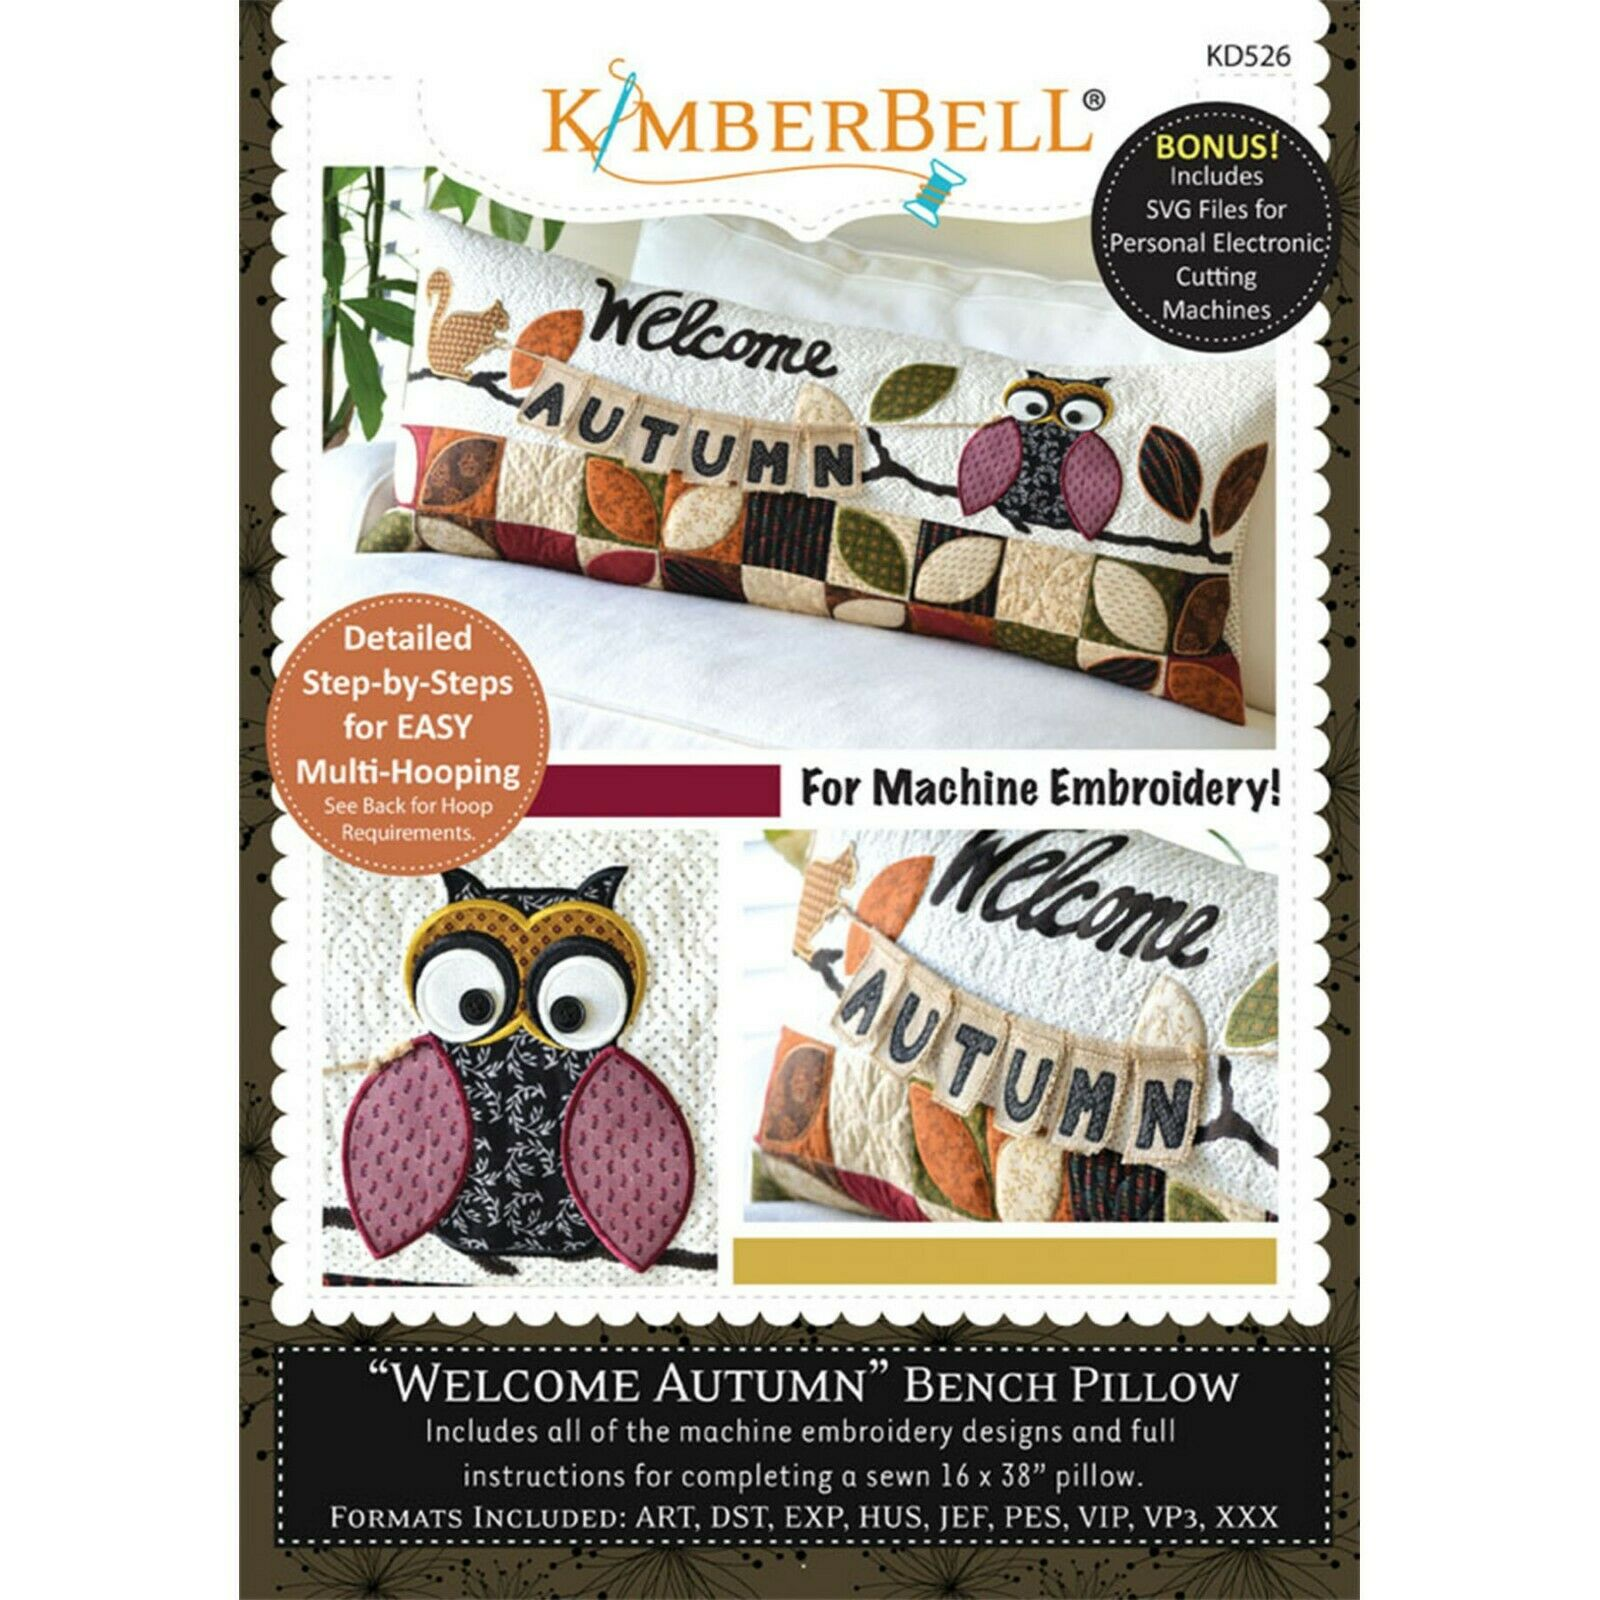 BENCH PILLOW -WELCOME AUTUMN -ME CD by KIMBERBELL